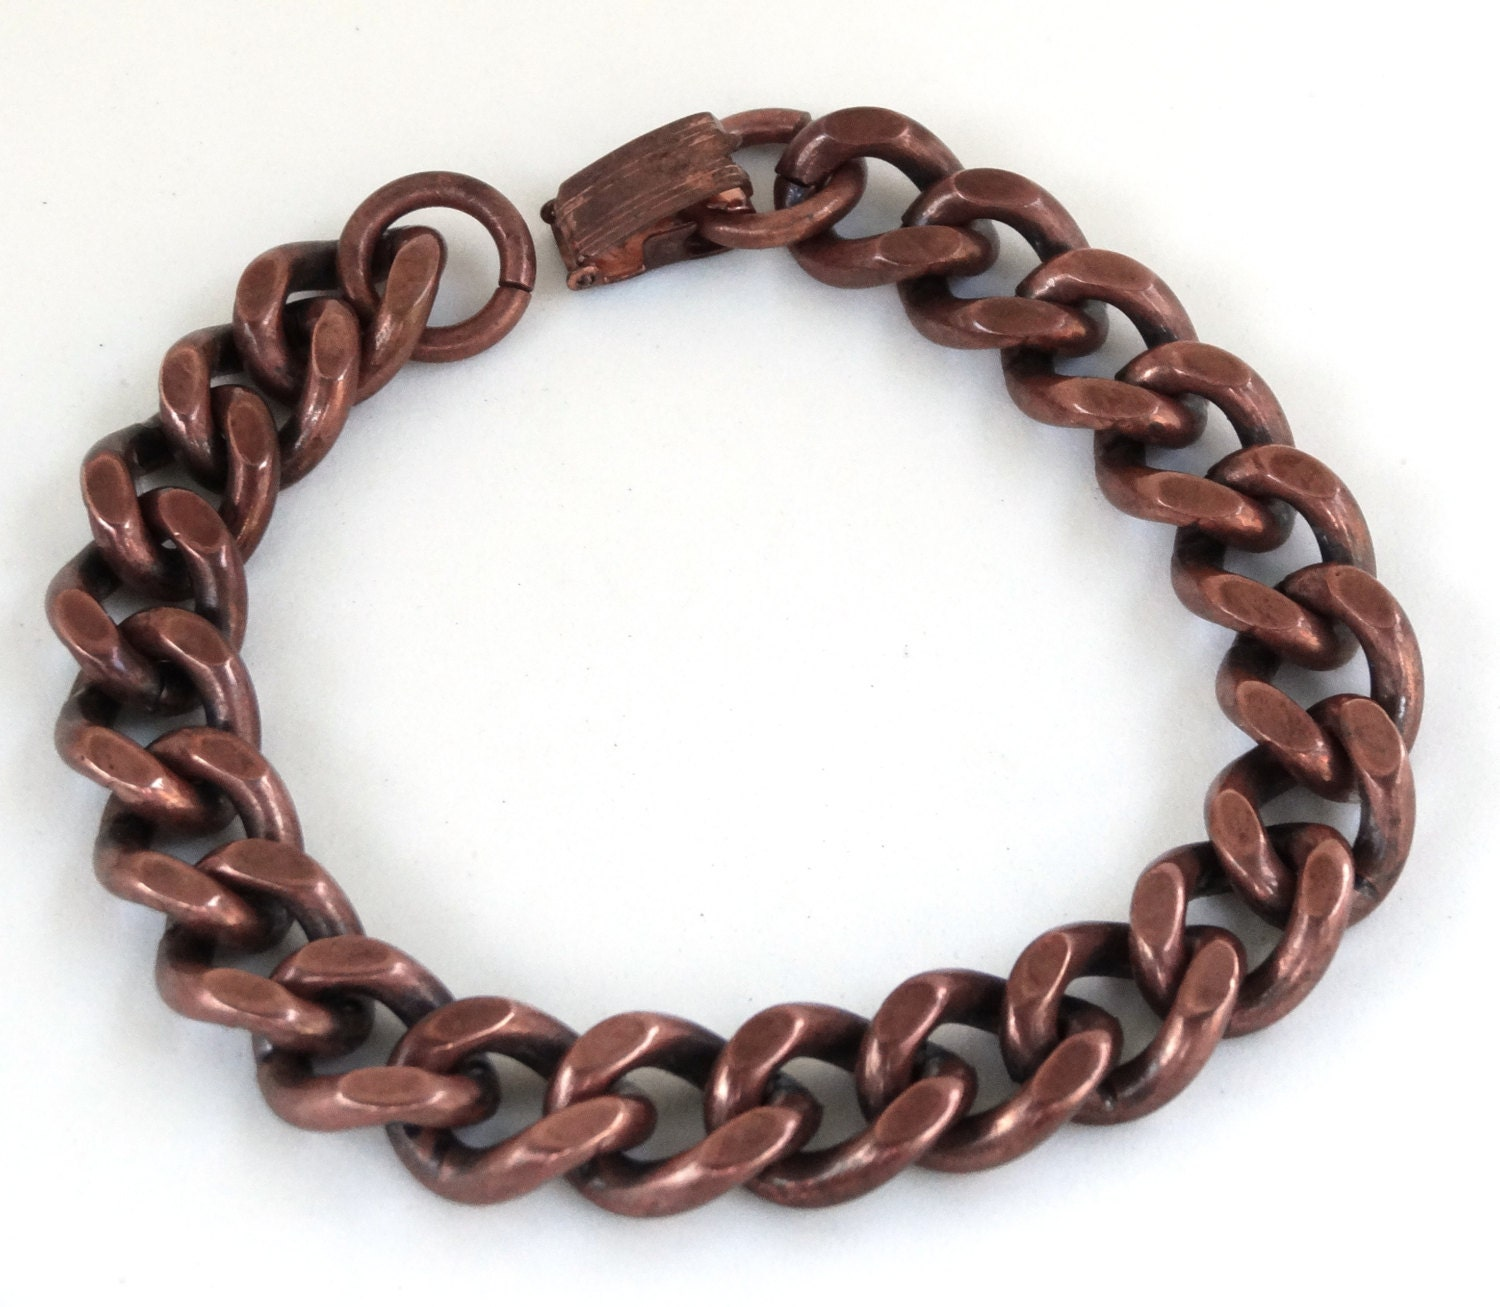 vintage mens bracelet chunky solid copper chain links heavy